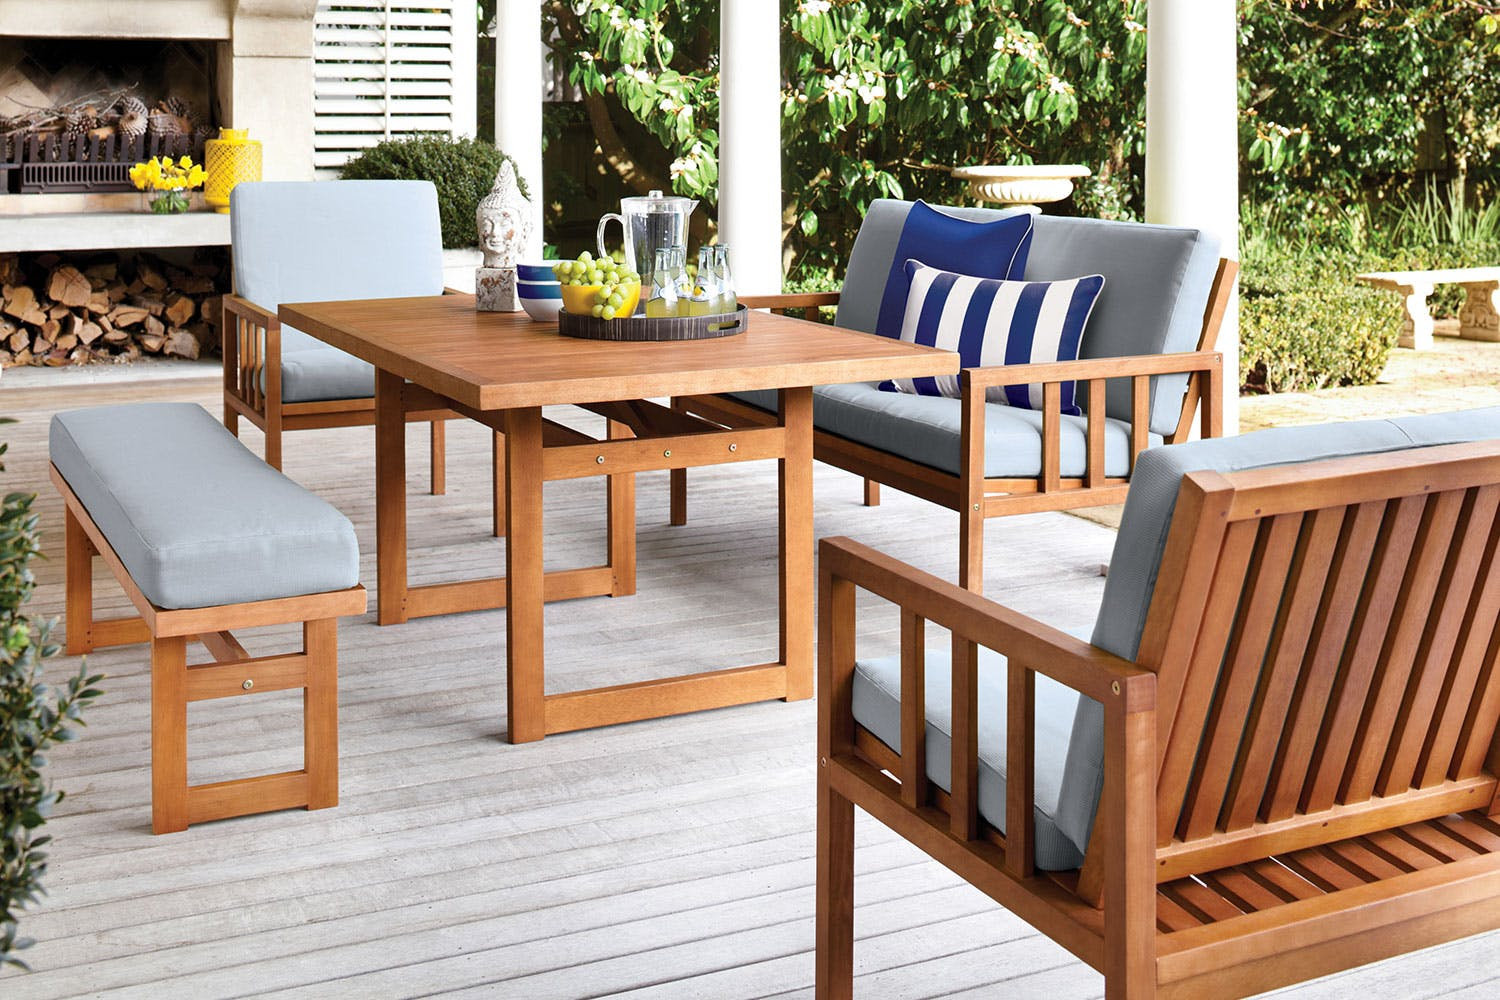 Cuba 5 piece outdoor lounge dining setting harvey norman new zealand